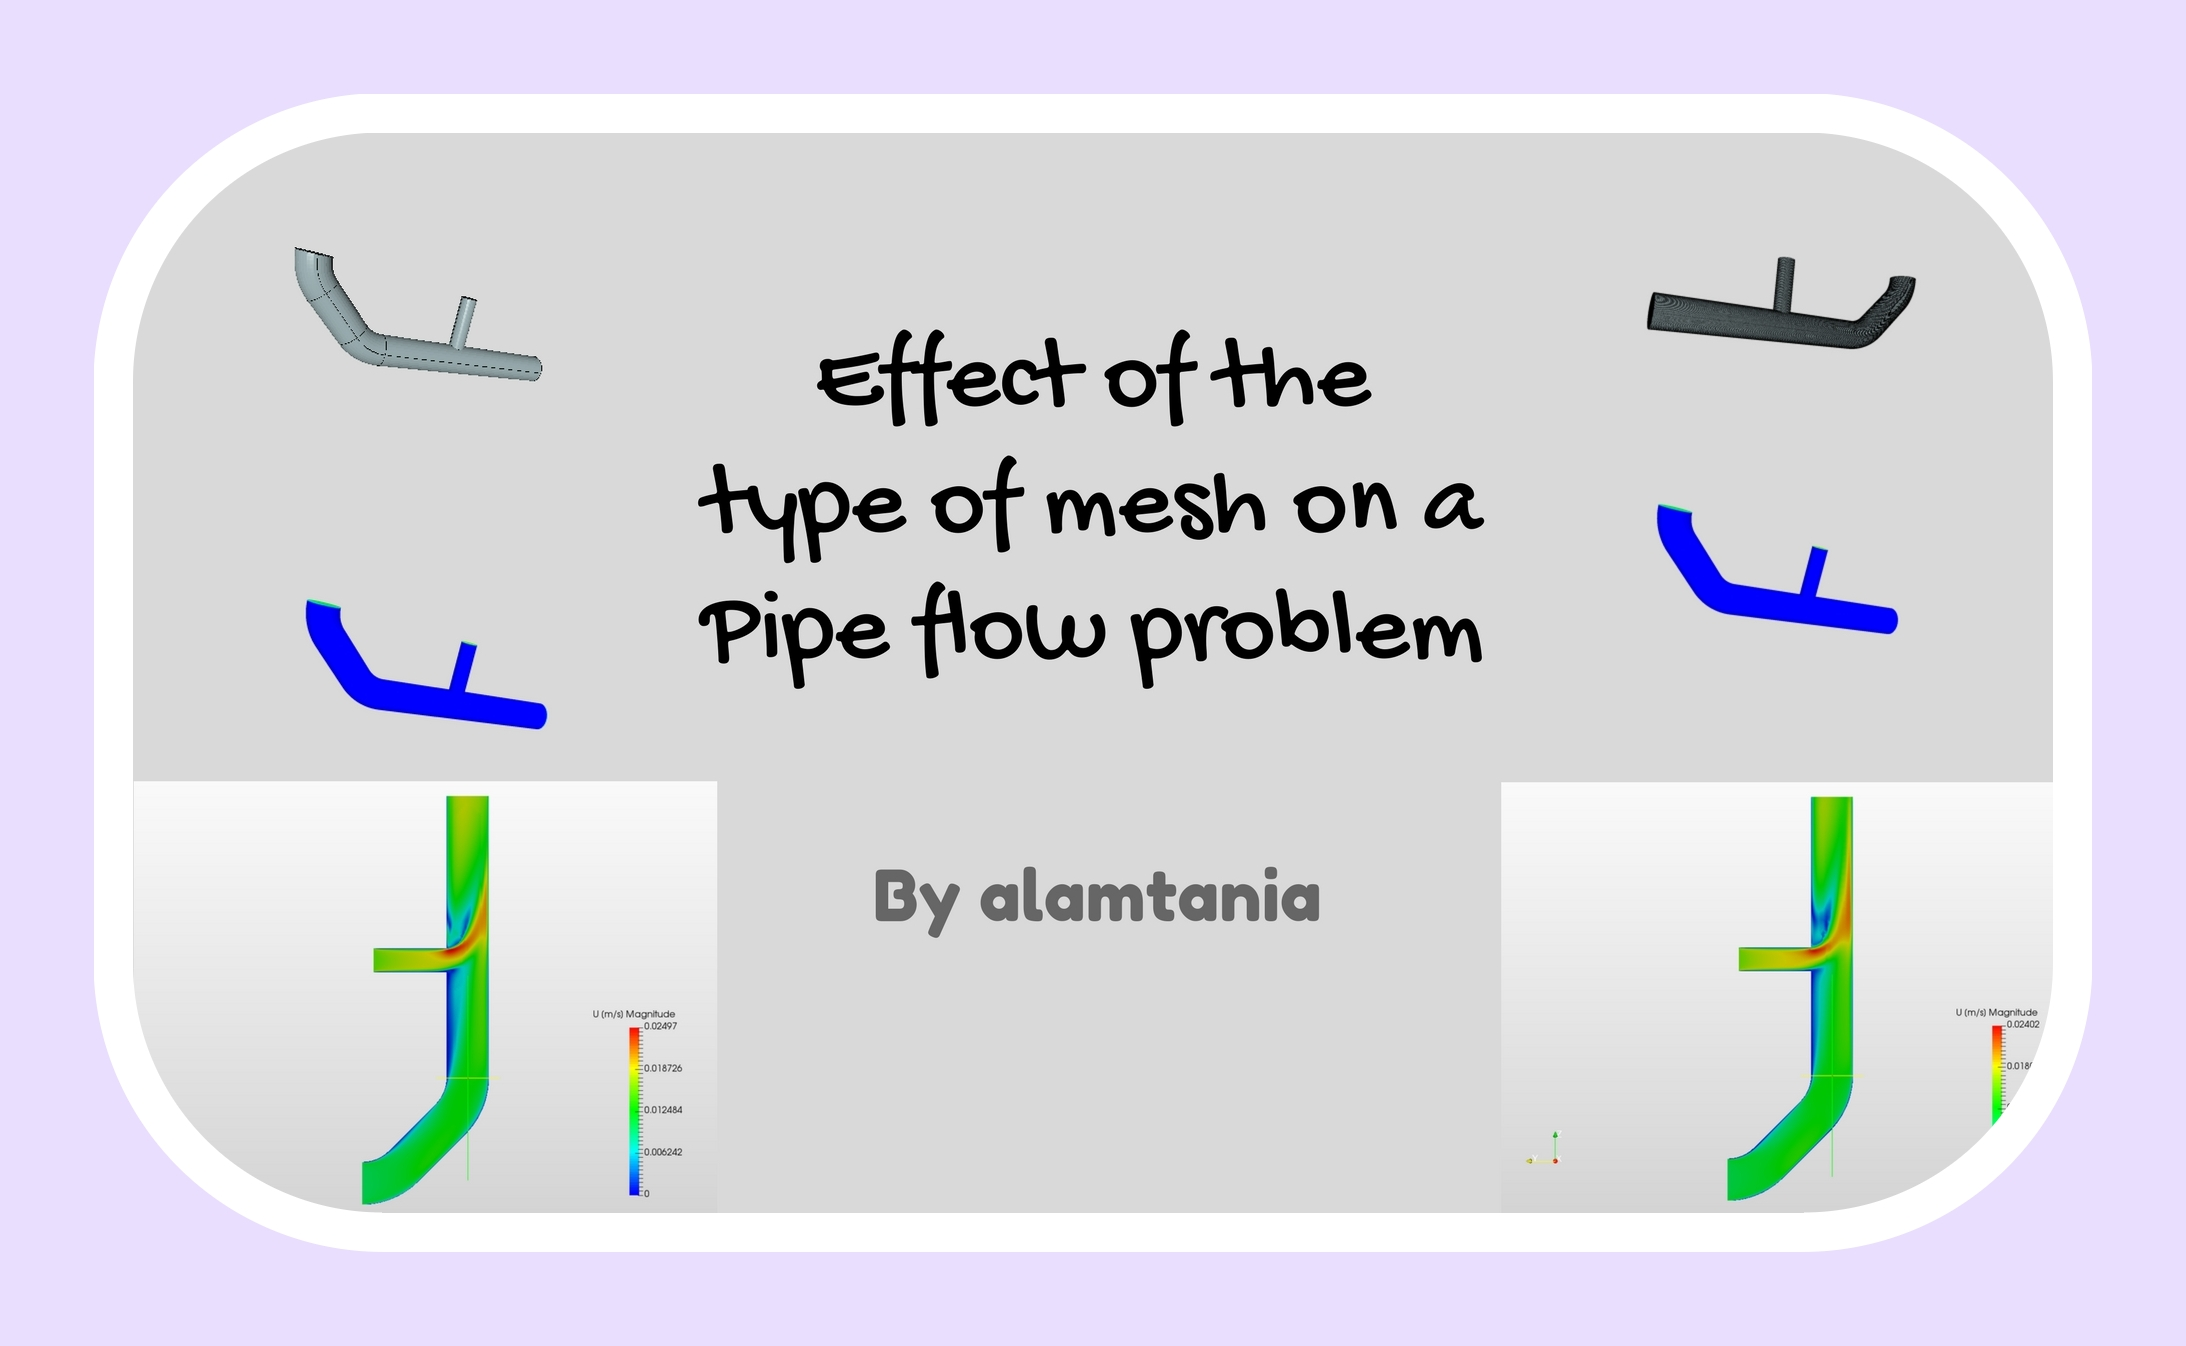 Effect of the type of mesh on a Pipe flow problem - Simulation